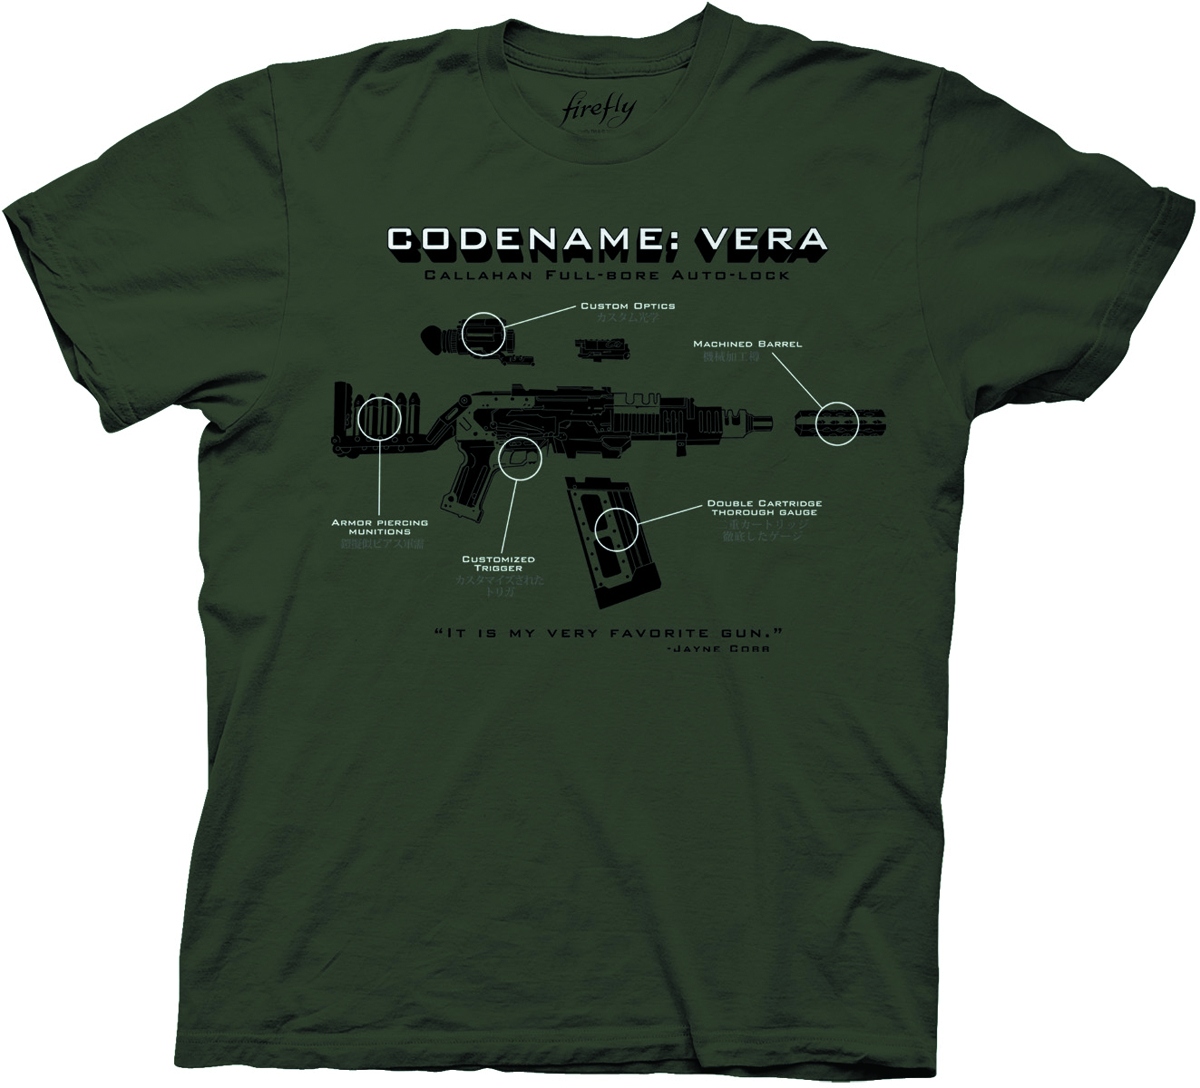 FIREFLY CODENAME VERA PX ARMY GREEN T/S MED